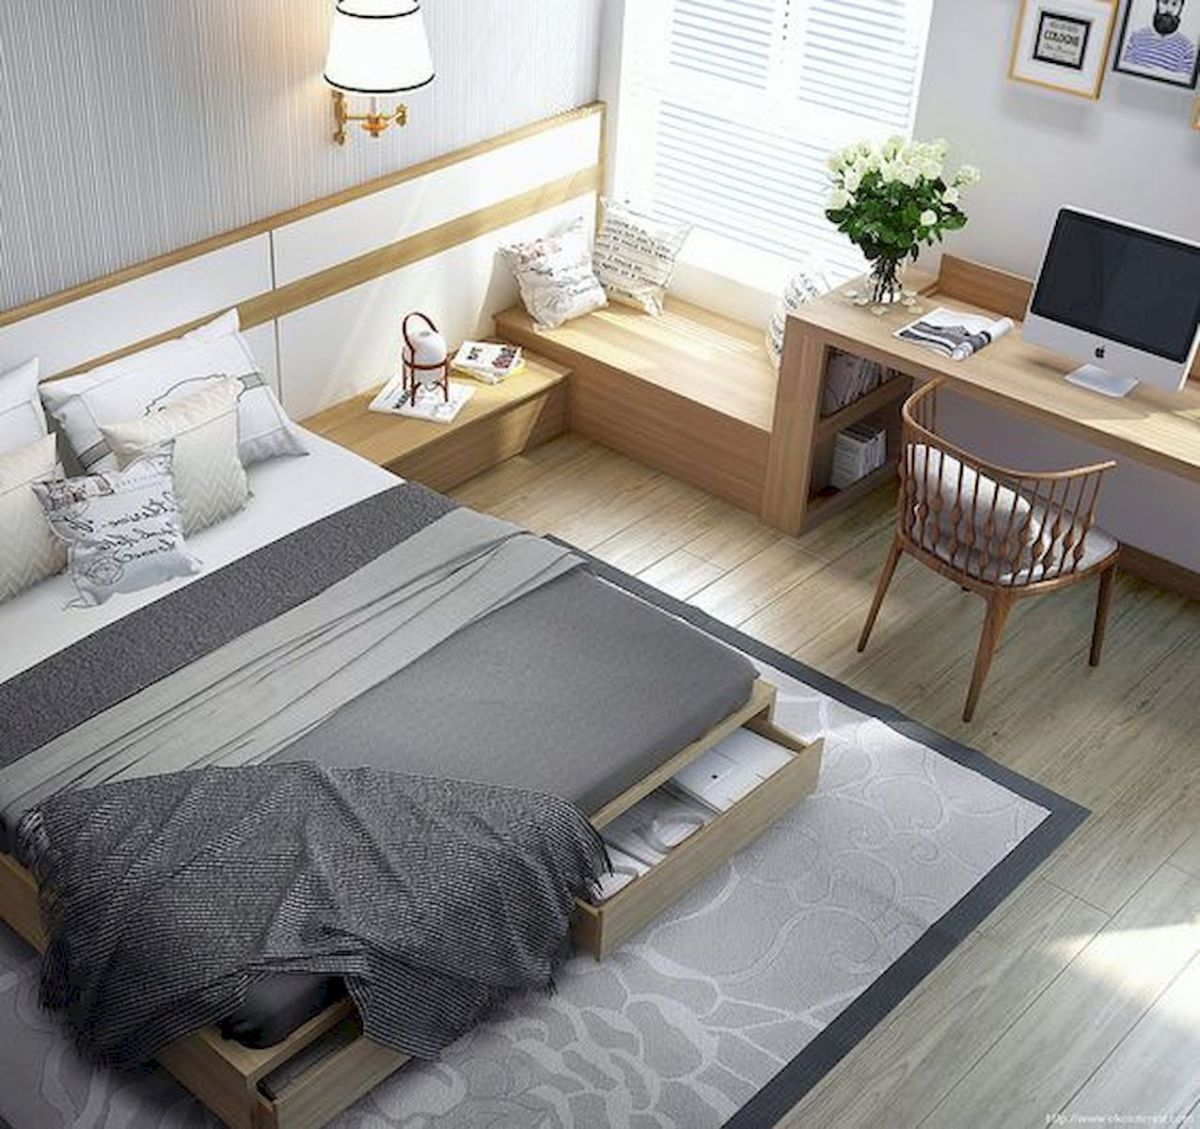 33 Ideas For Small Apartment Bedroom College (25)